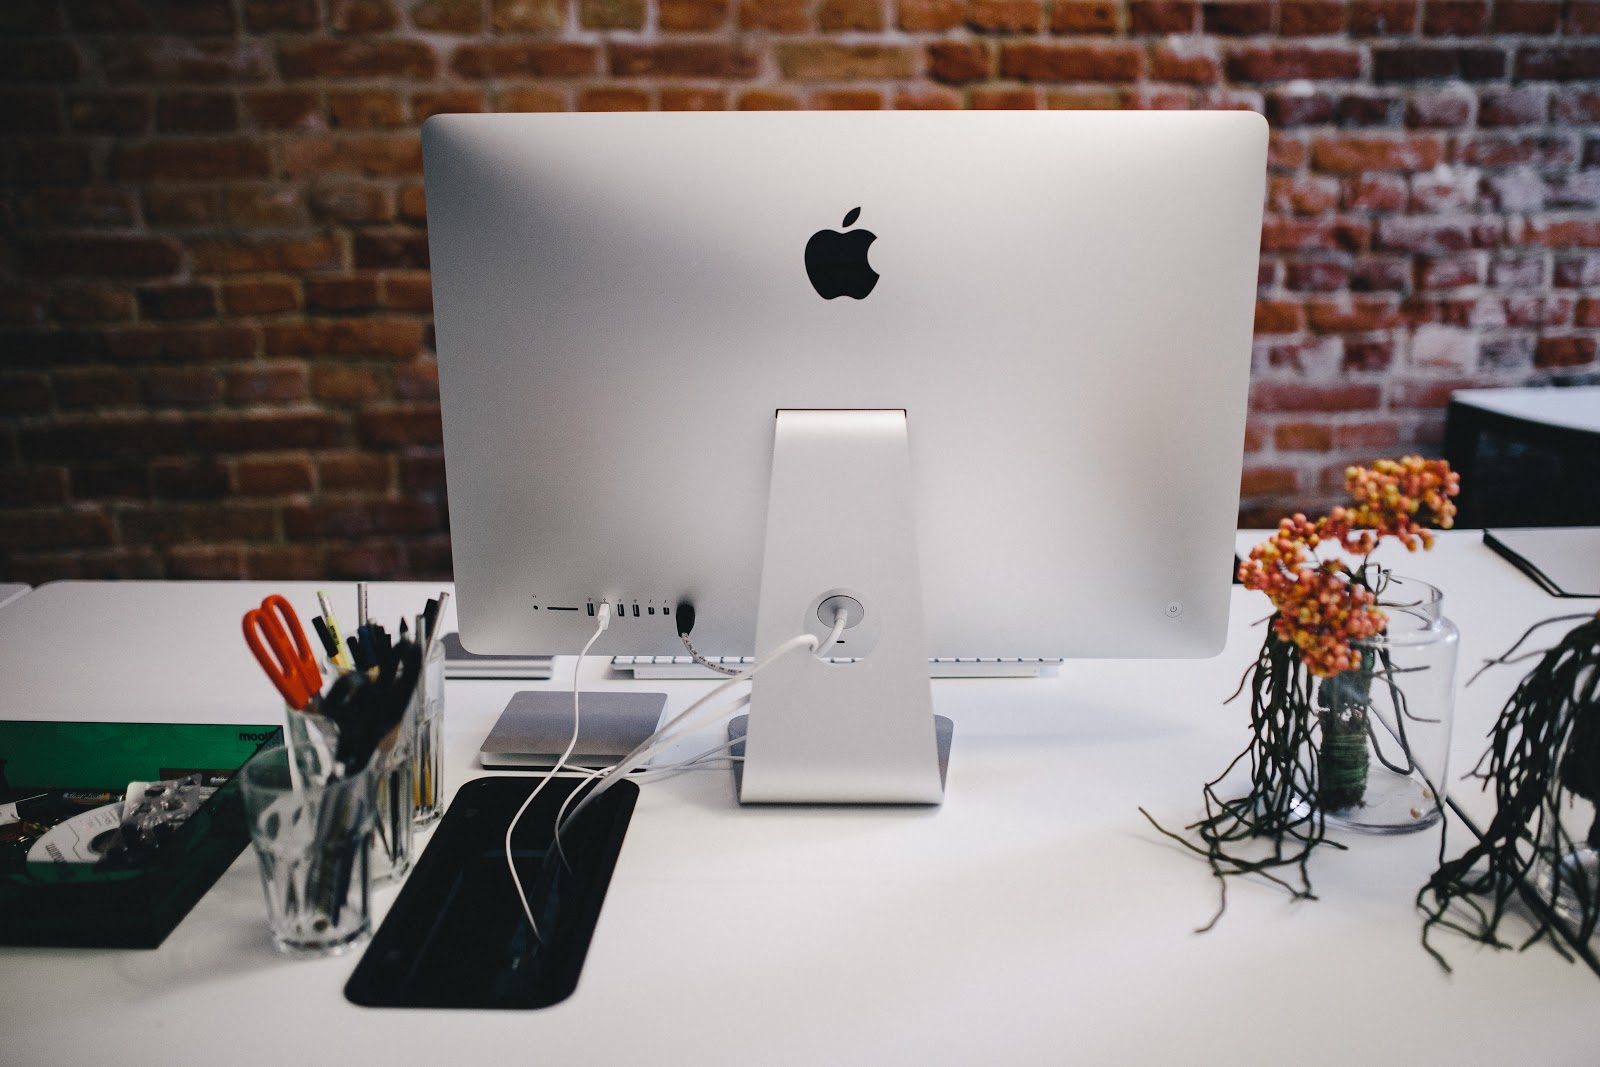 IT services help to grow your freelance business